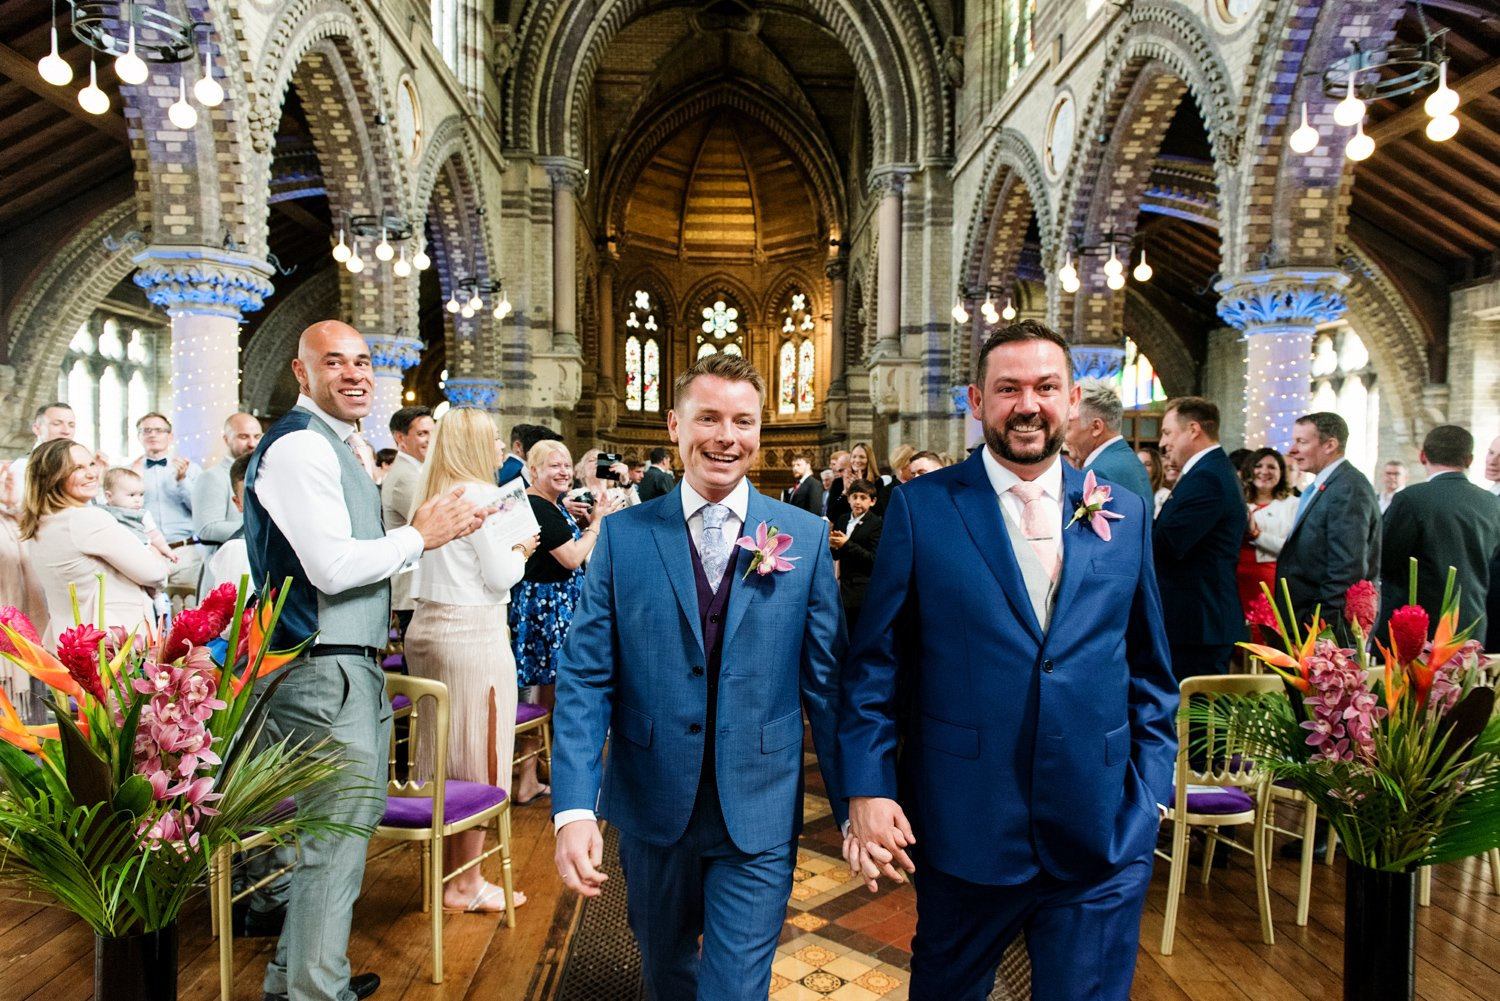 st-stephens-rosslyn-hill-wedding-photography-16